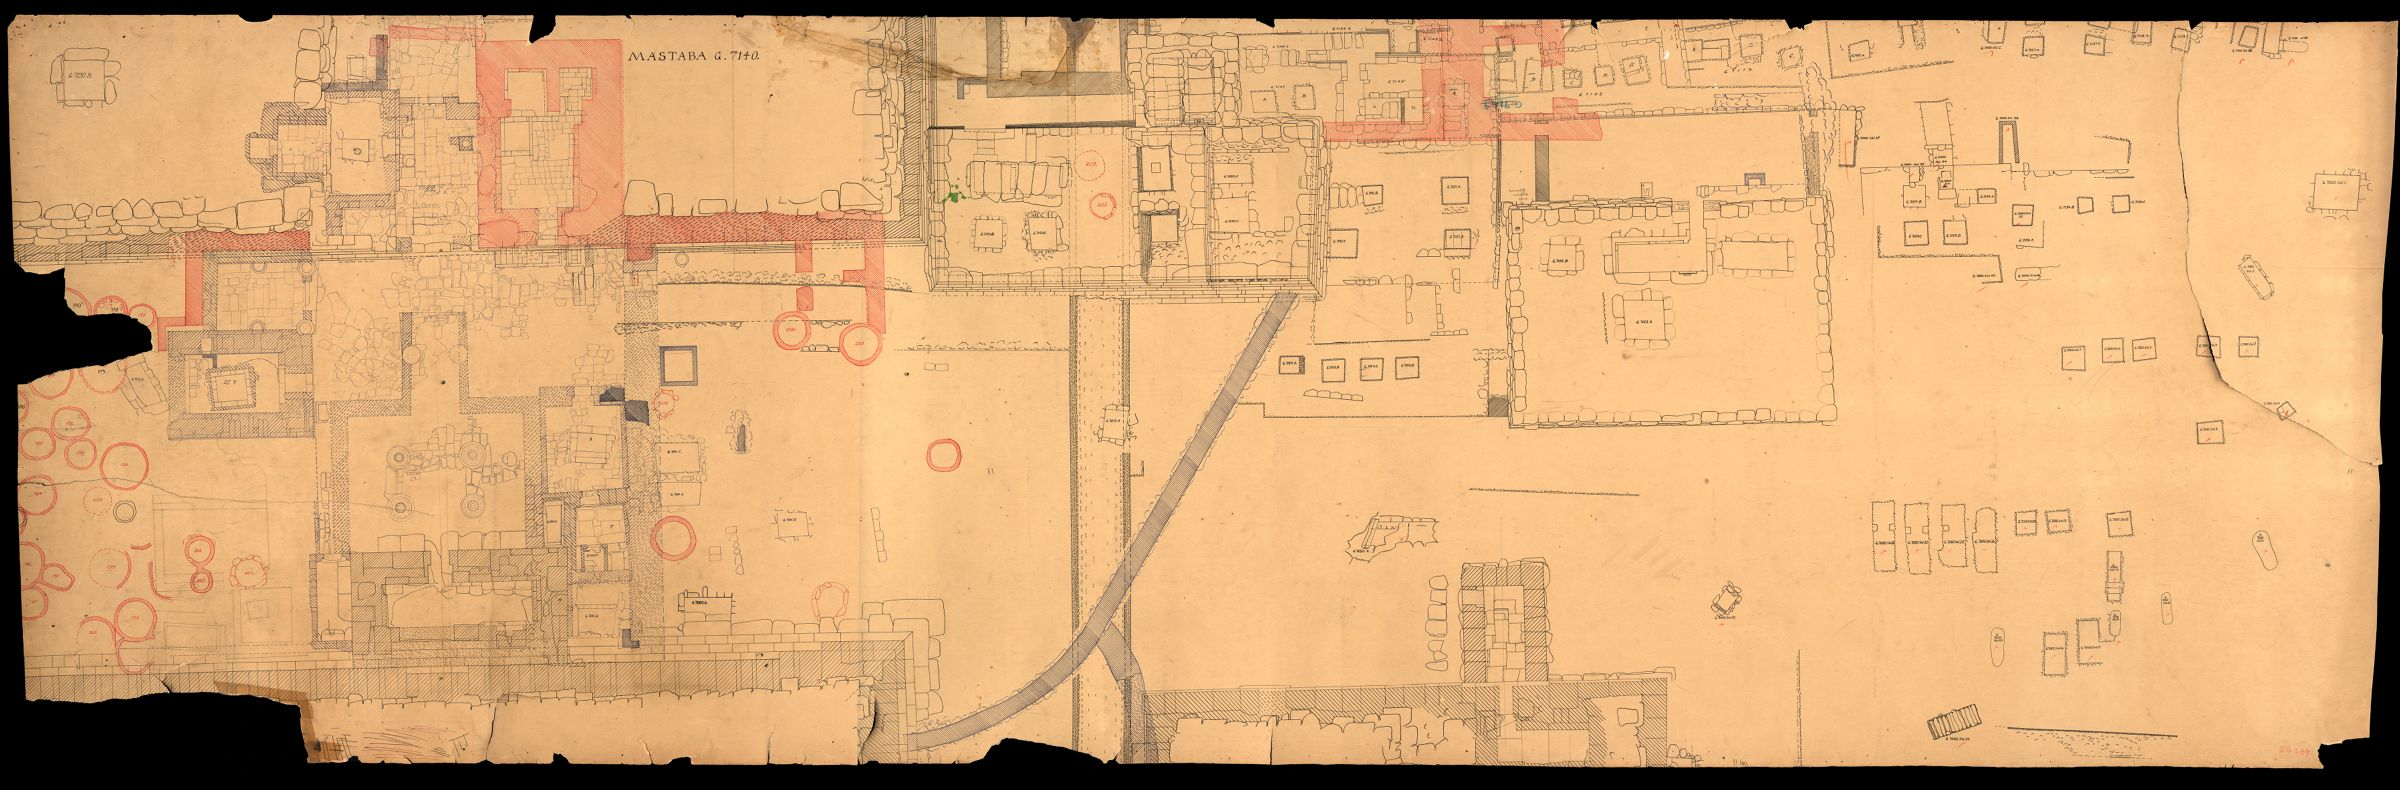 Maps and plans: Plan of cemetery G 7000: Isis Temple, portions of G 7130-7140, and surrounding area